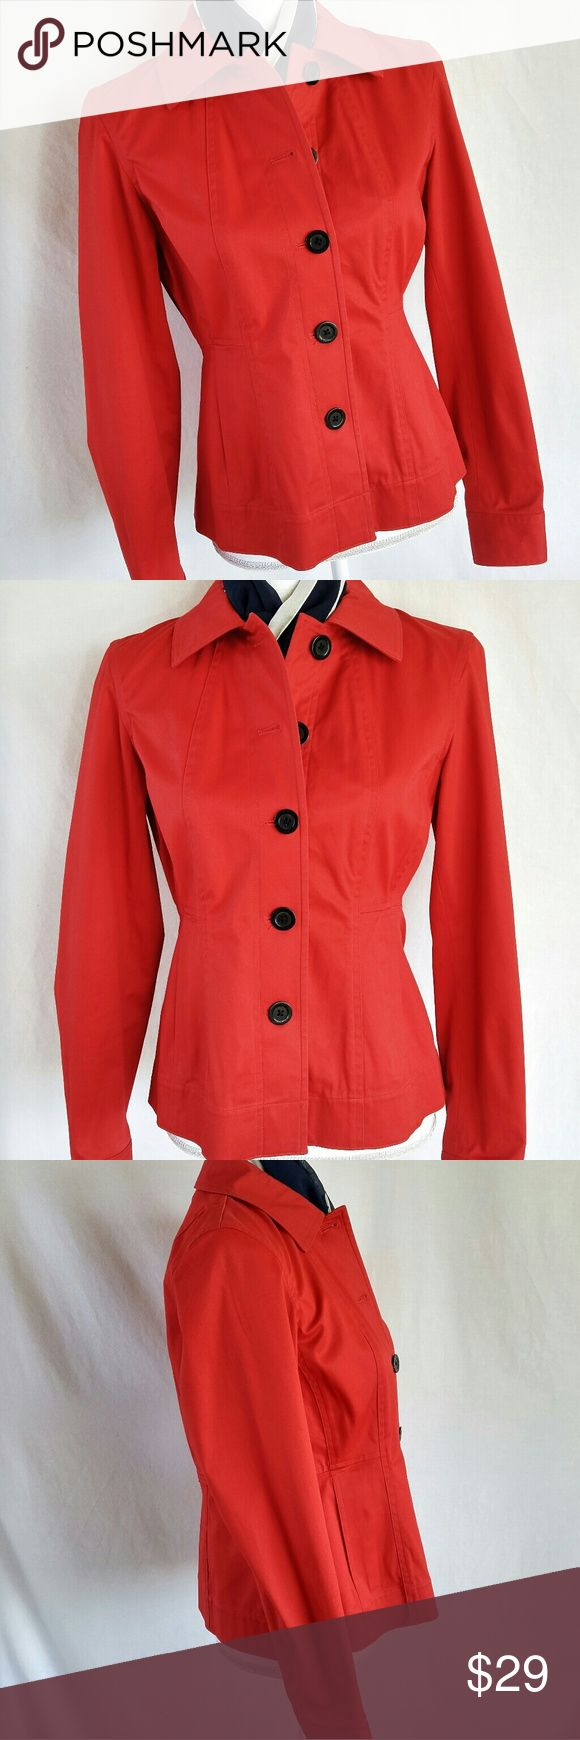 Jones New York Size Small Red Jacket Coat Size small Measurements to come  Very good pre-owned condition, a stray thread here or there, no fading, stains, or holes. Jones New York Jackets & Coats